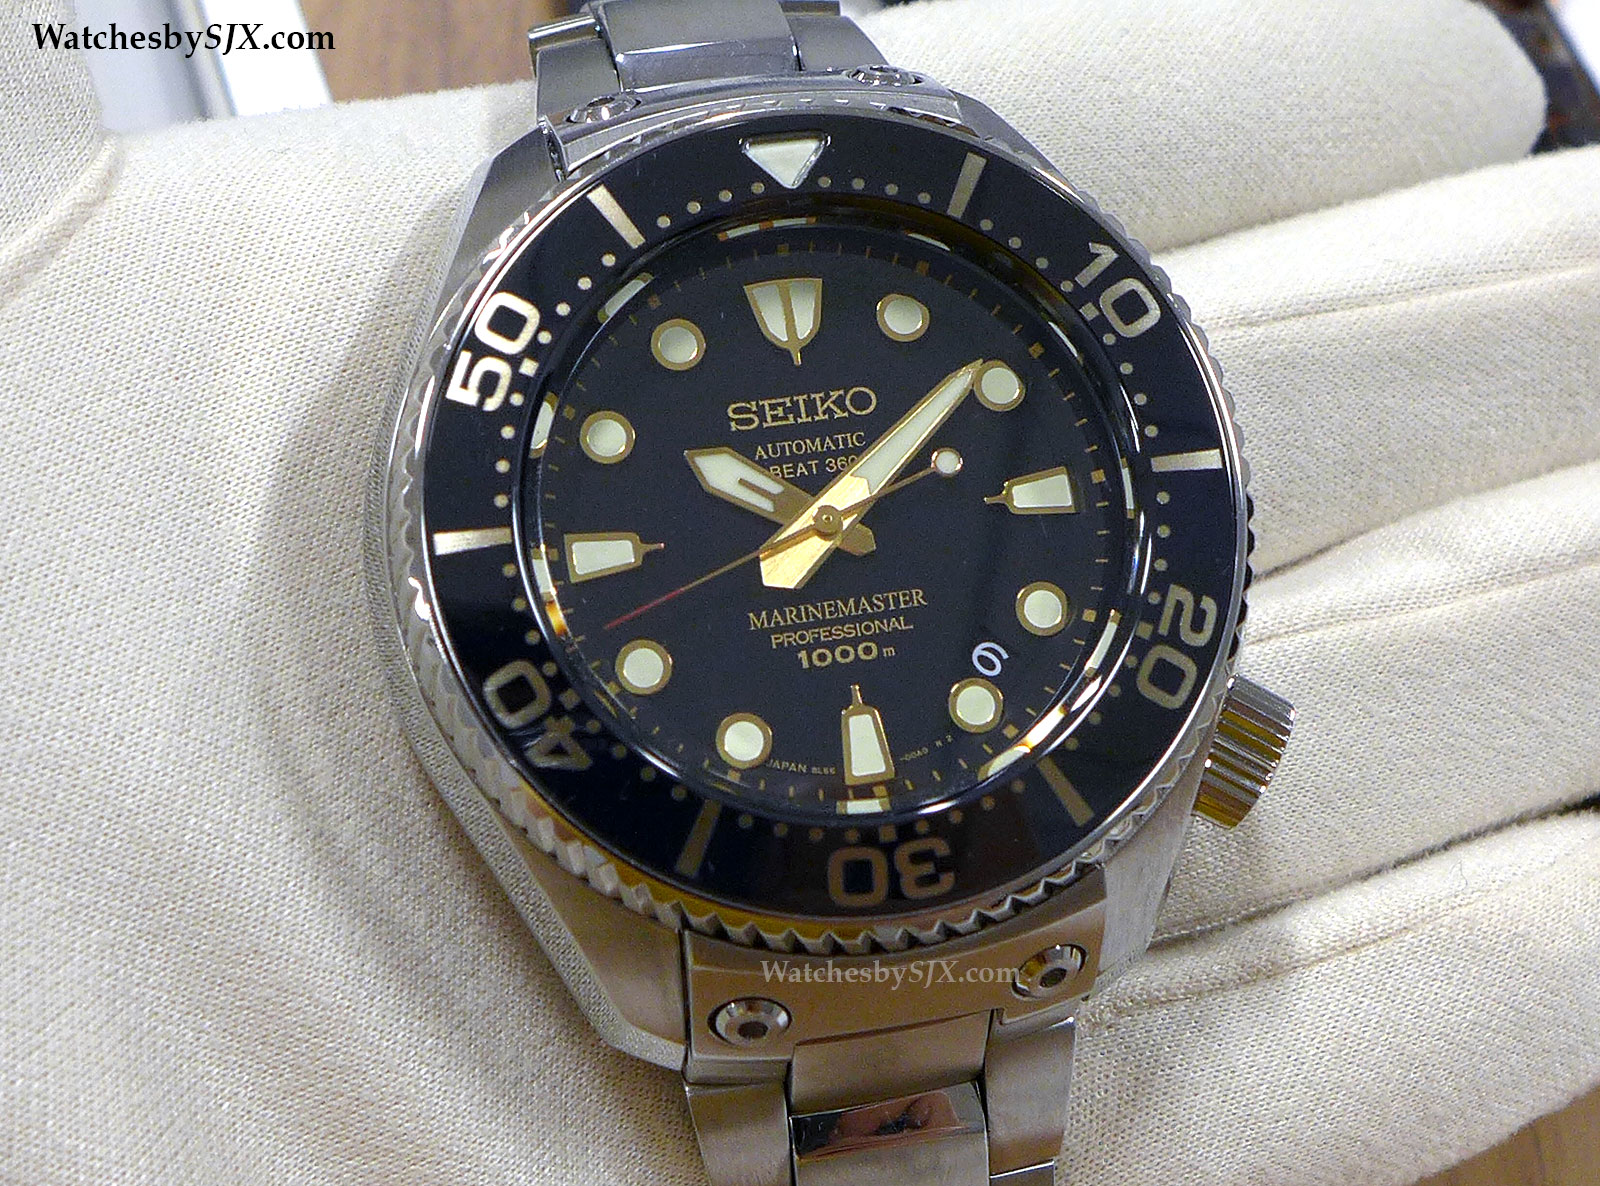 Seiko-Marinemaster-1000m-Hi-Beat-Limited-Edition-SBEX001-7